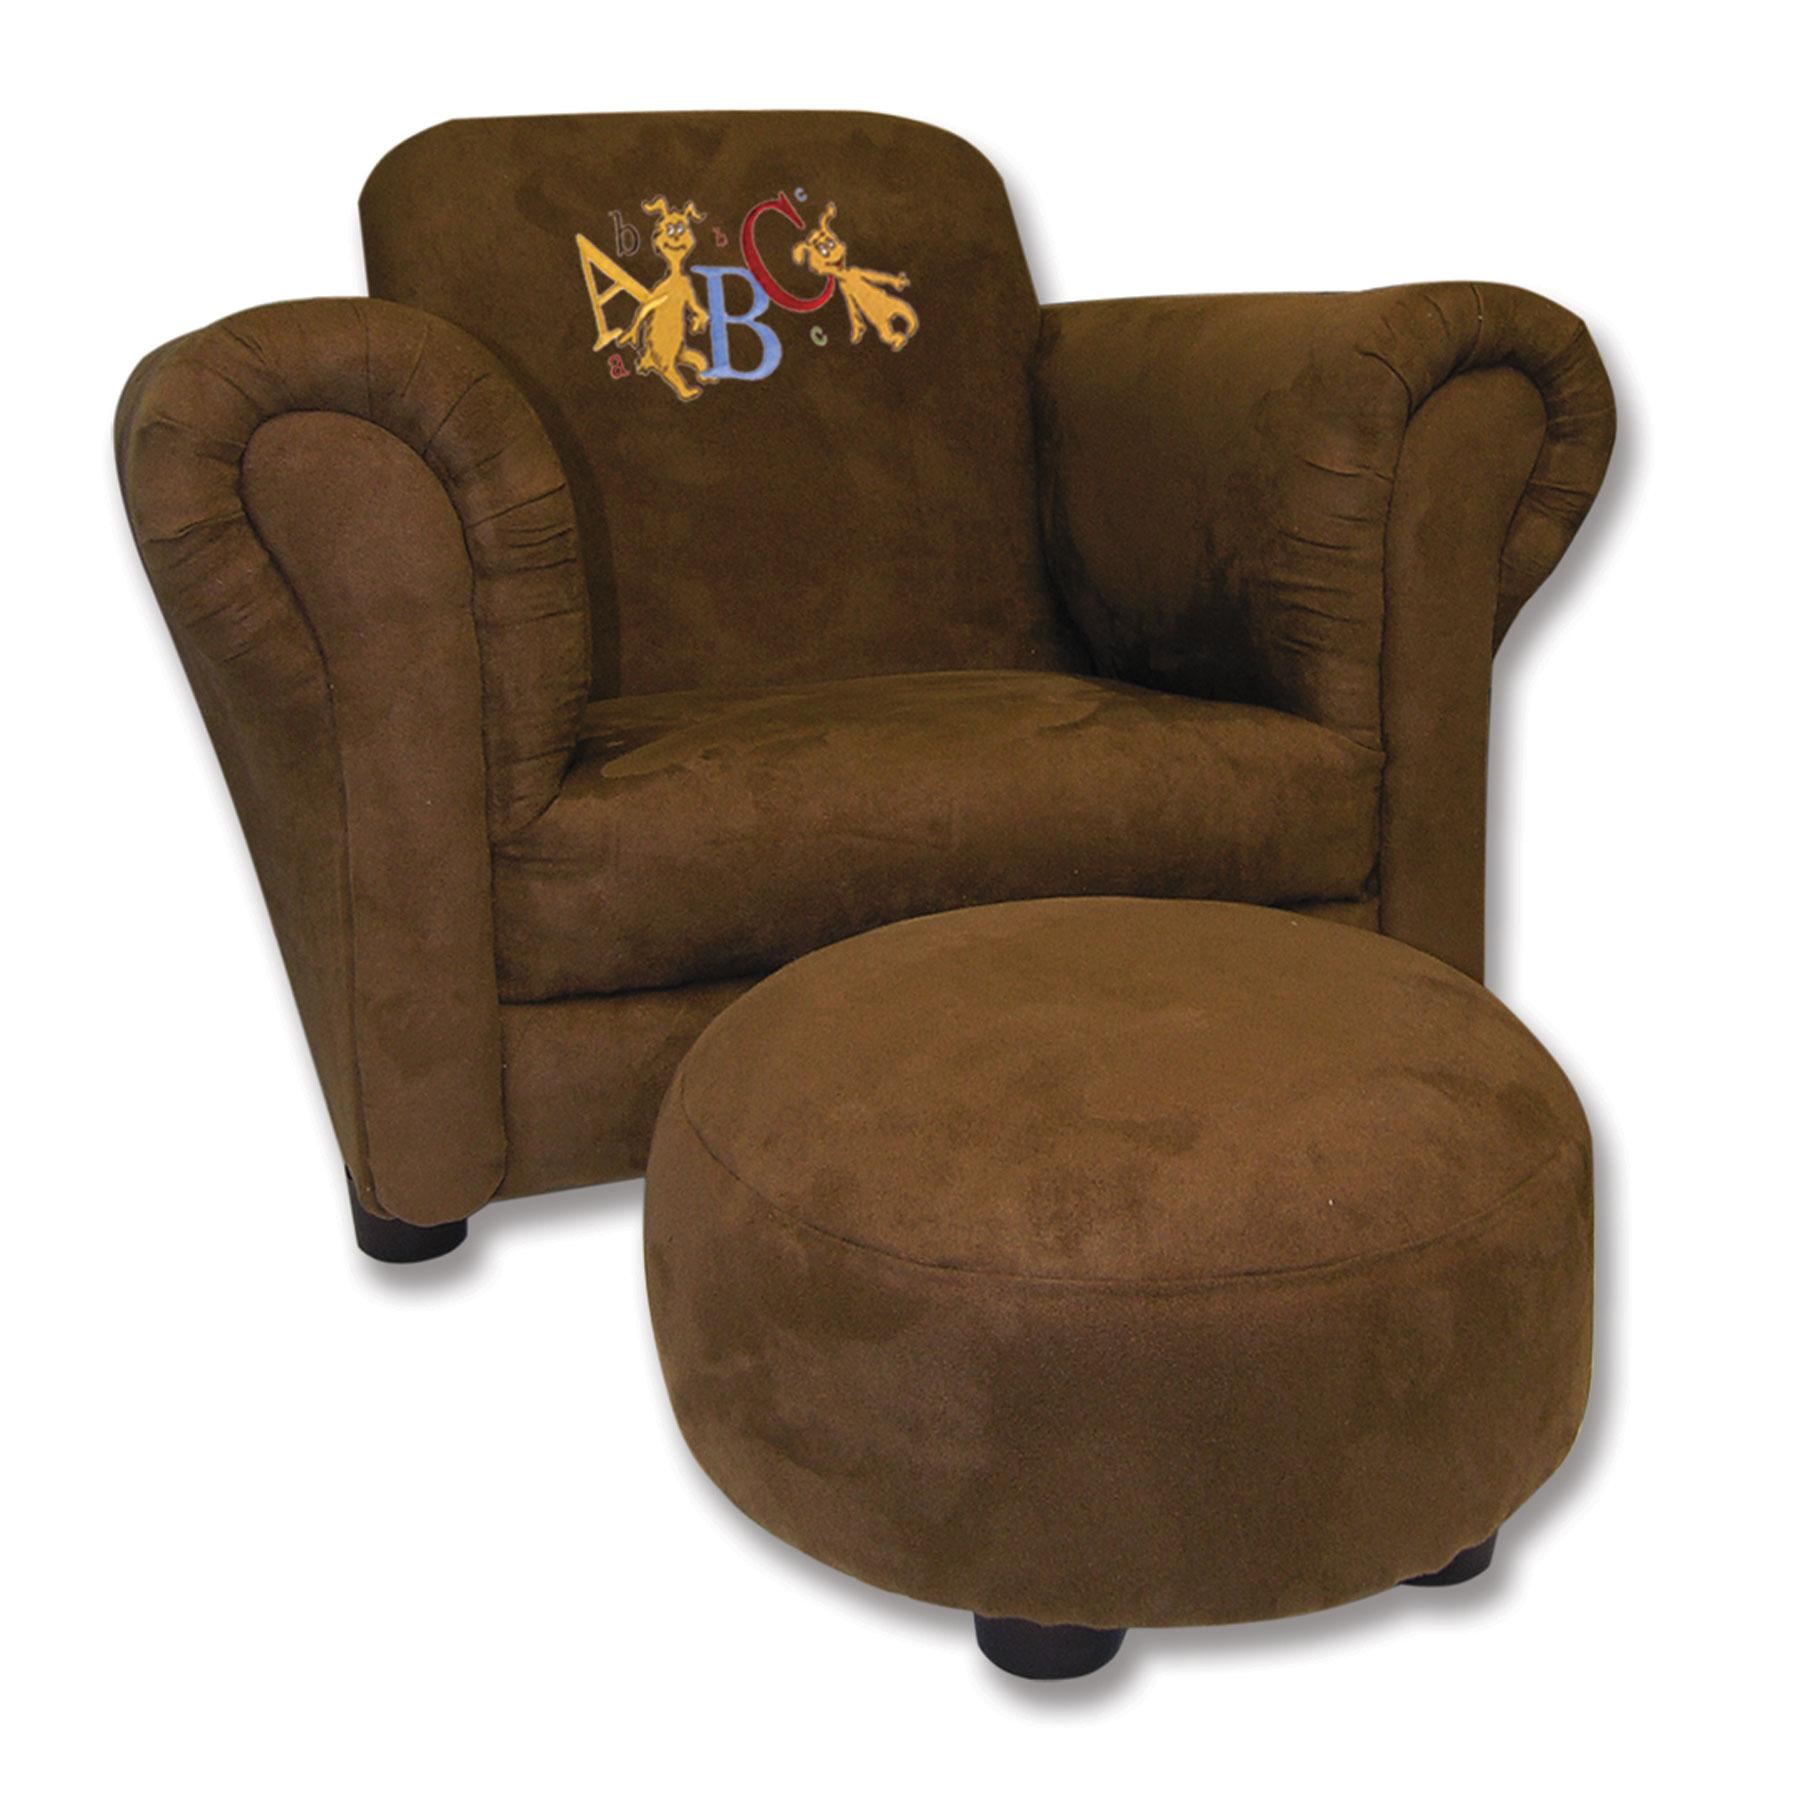 Captivating Trend Lab Dr. Seuss ABC Brown Suede Chair With Ottoman Search Results